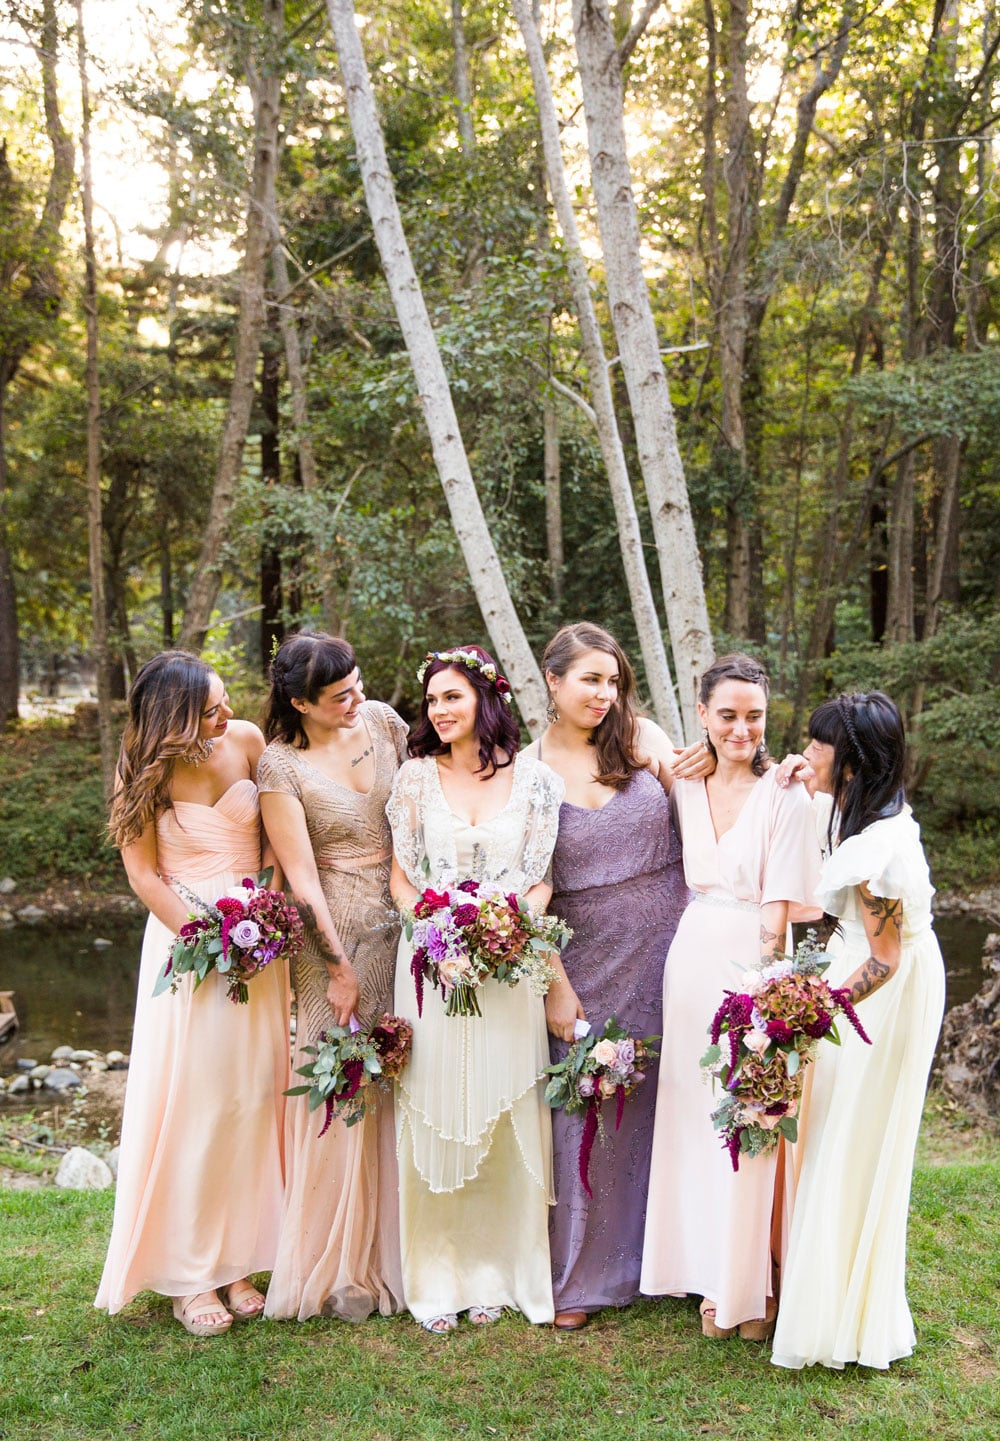 Harmonizing Bridal Bouquets by Kate Healey of Big Sur Flowers